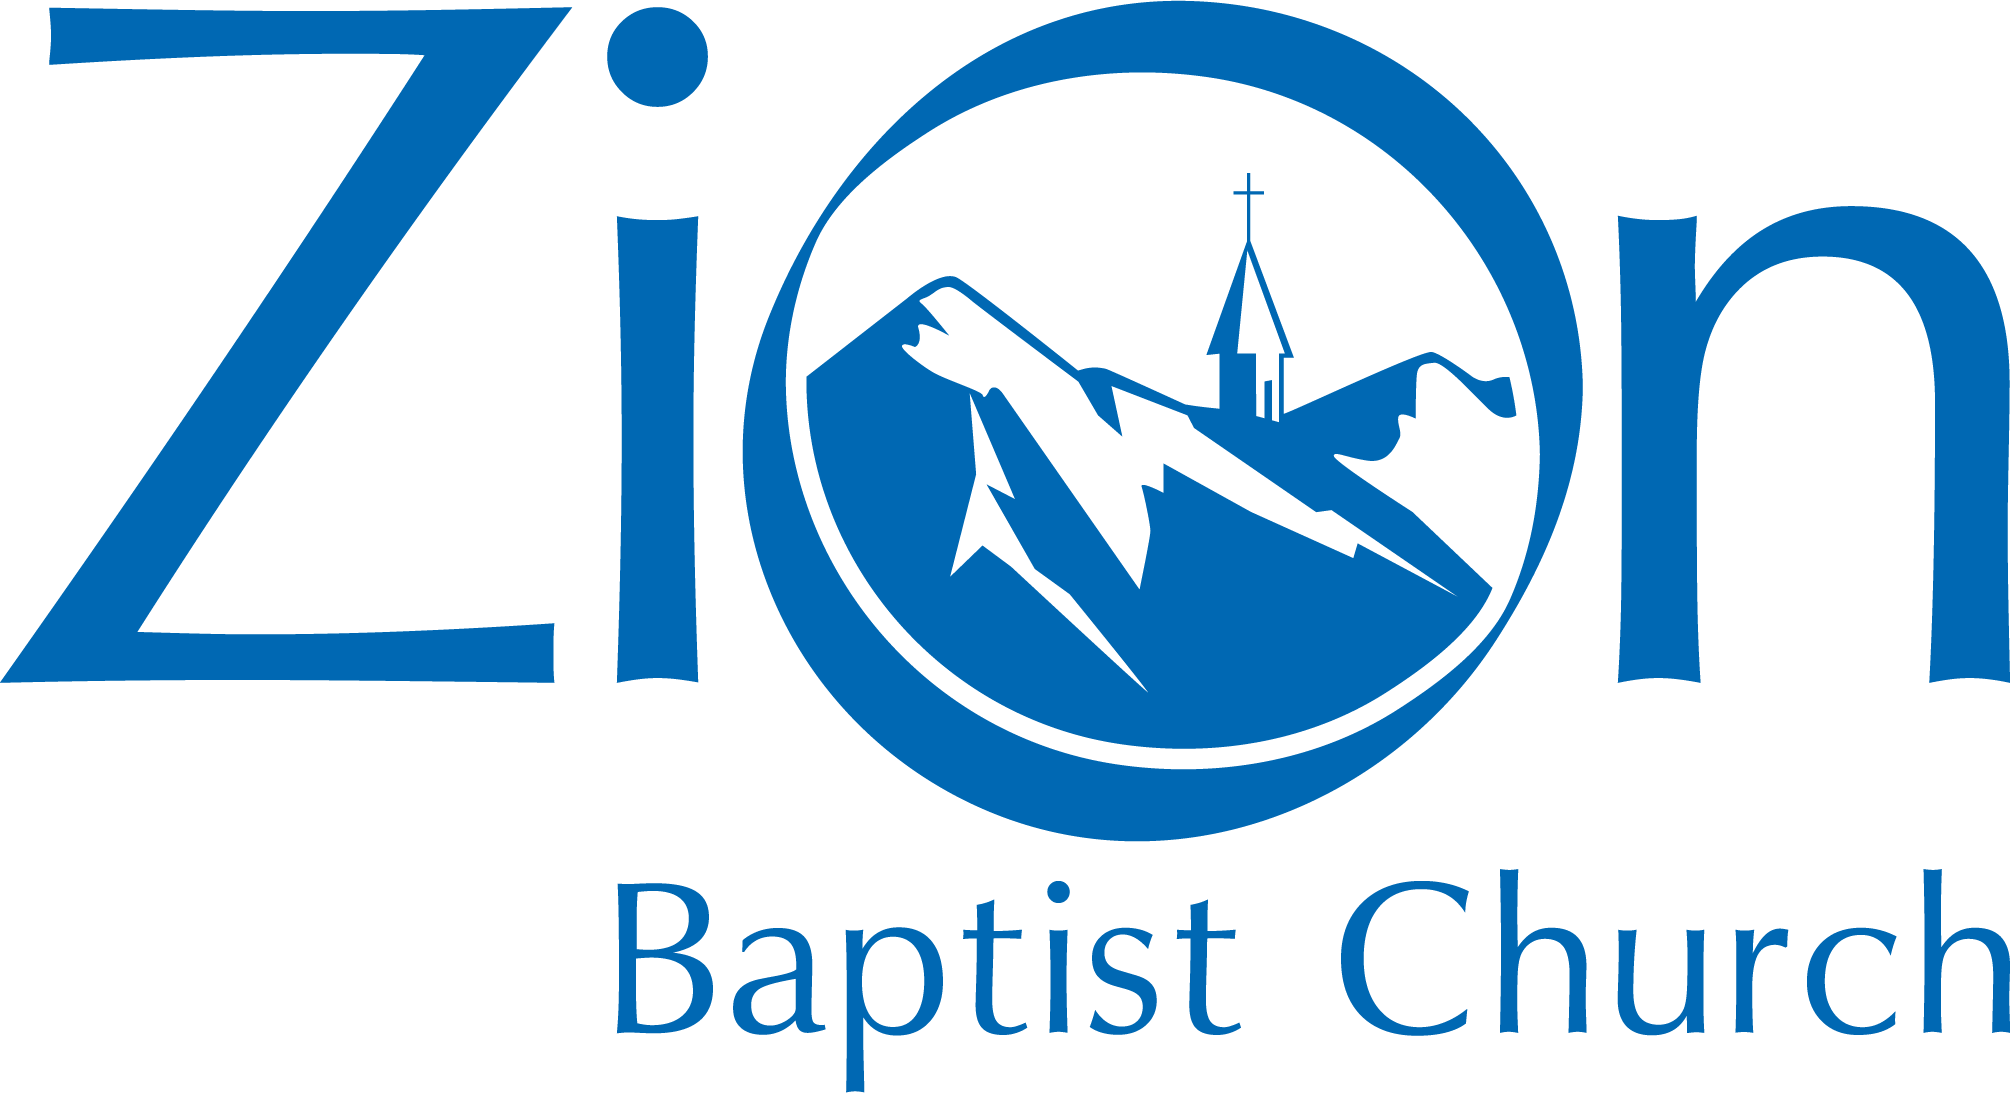 Zion Baptist Church